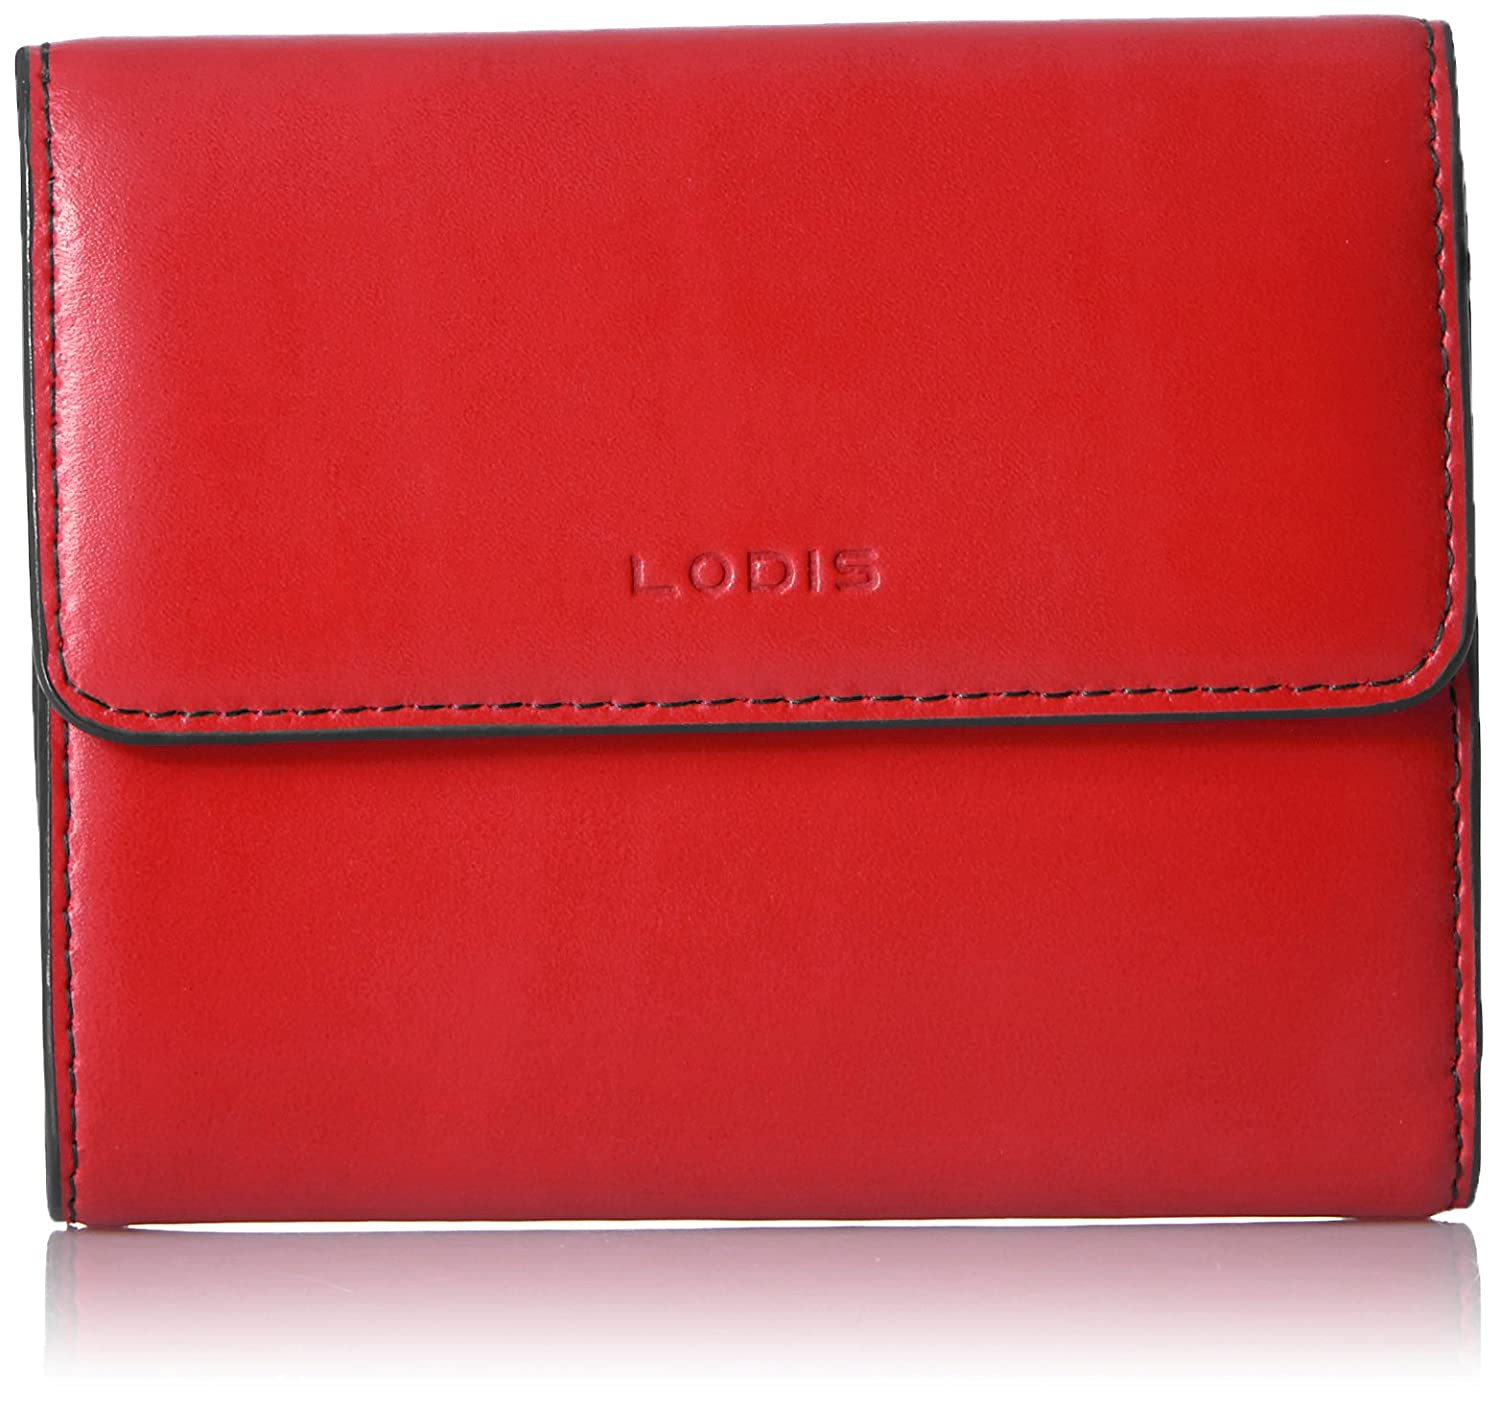 Lodis Audrey Rfid French Purse Wallet 240AULK